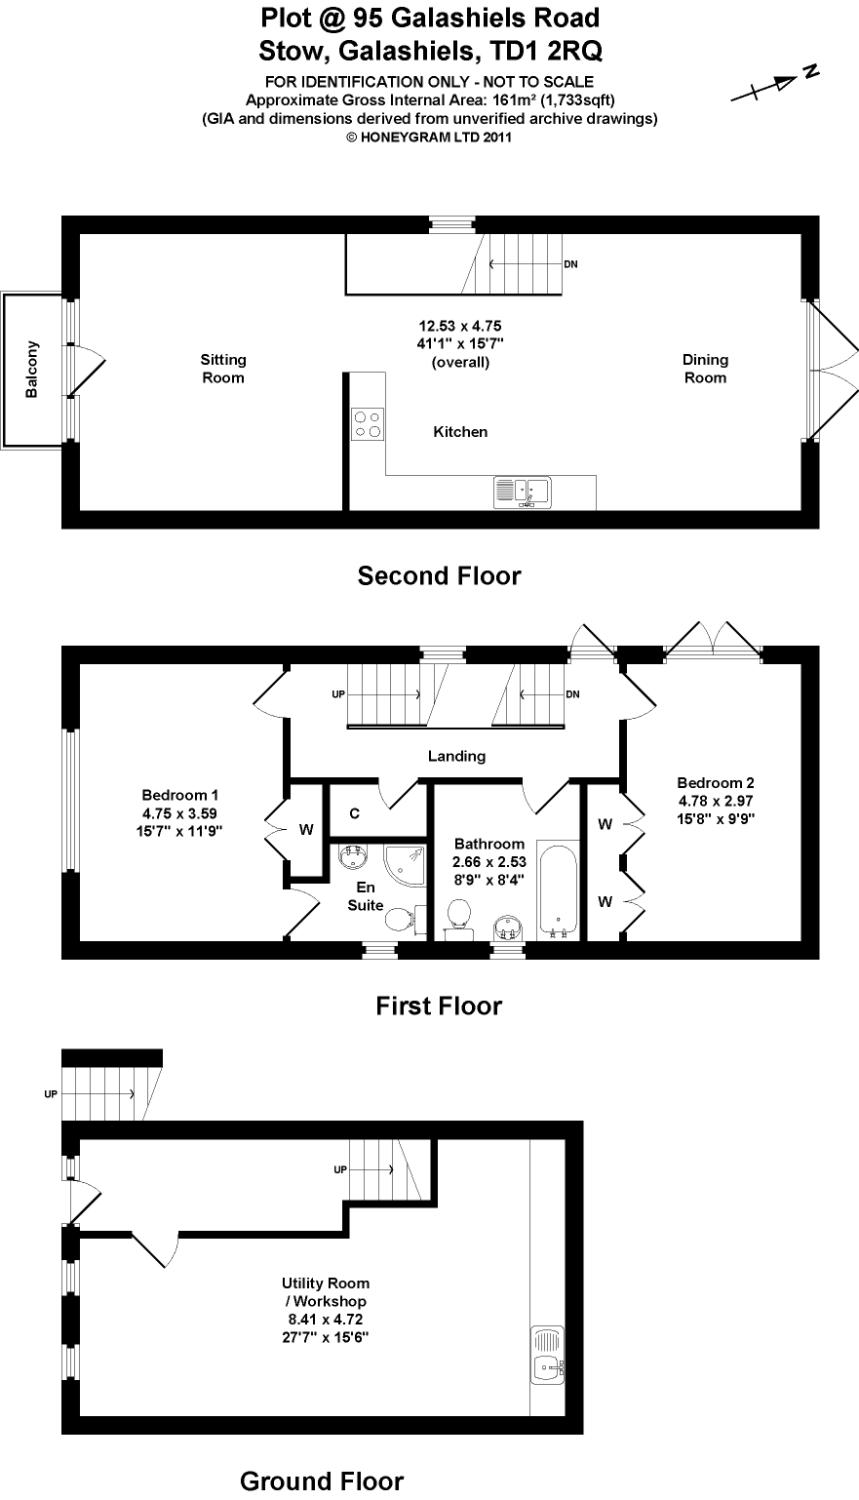 Floorplans for Stow Plot, 95 Galashiels Road, Stow, TD1